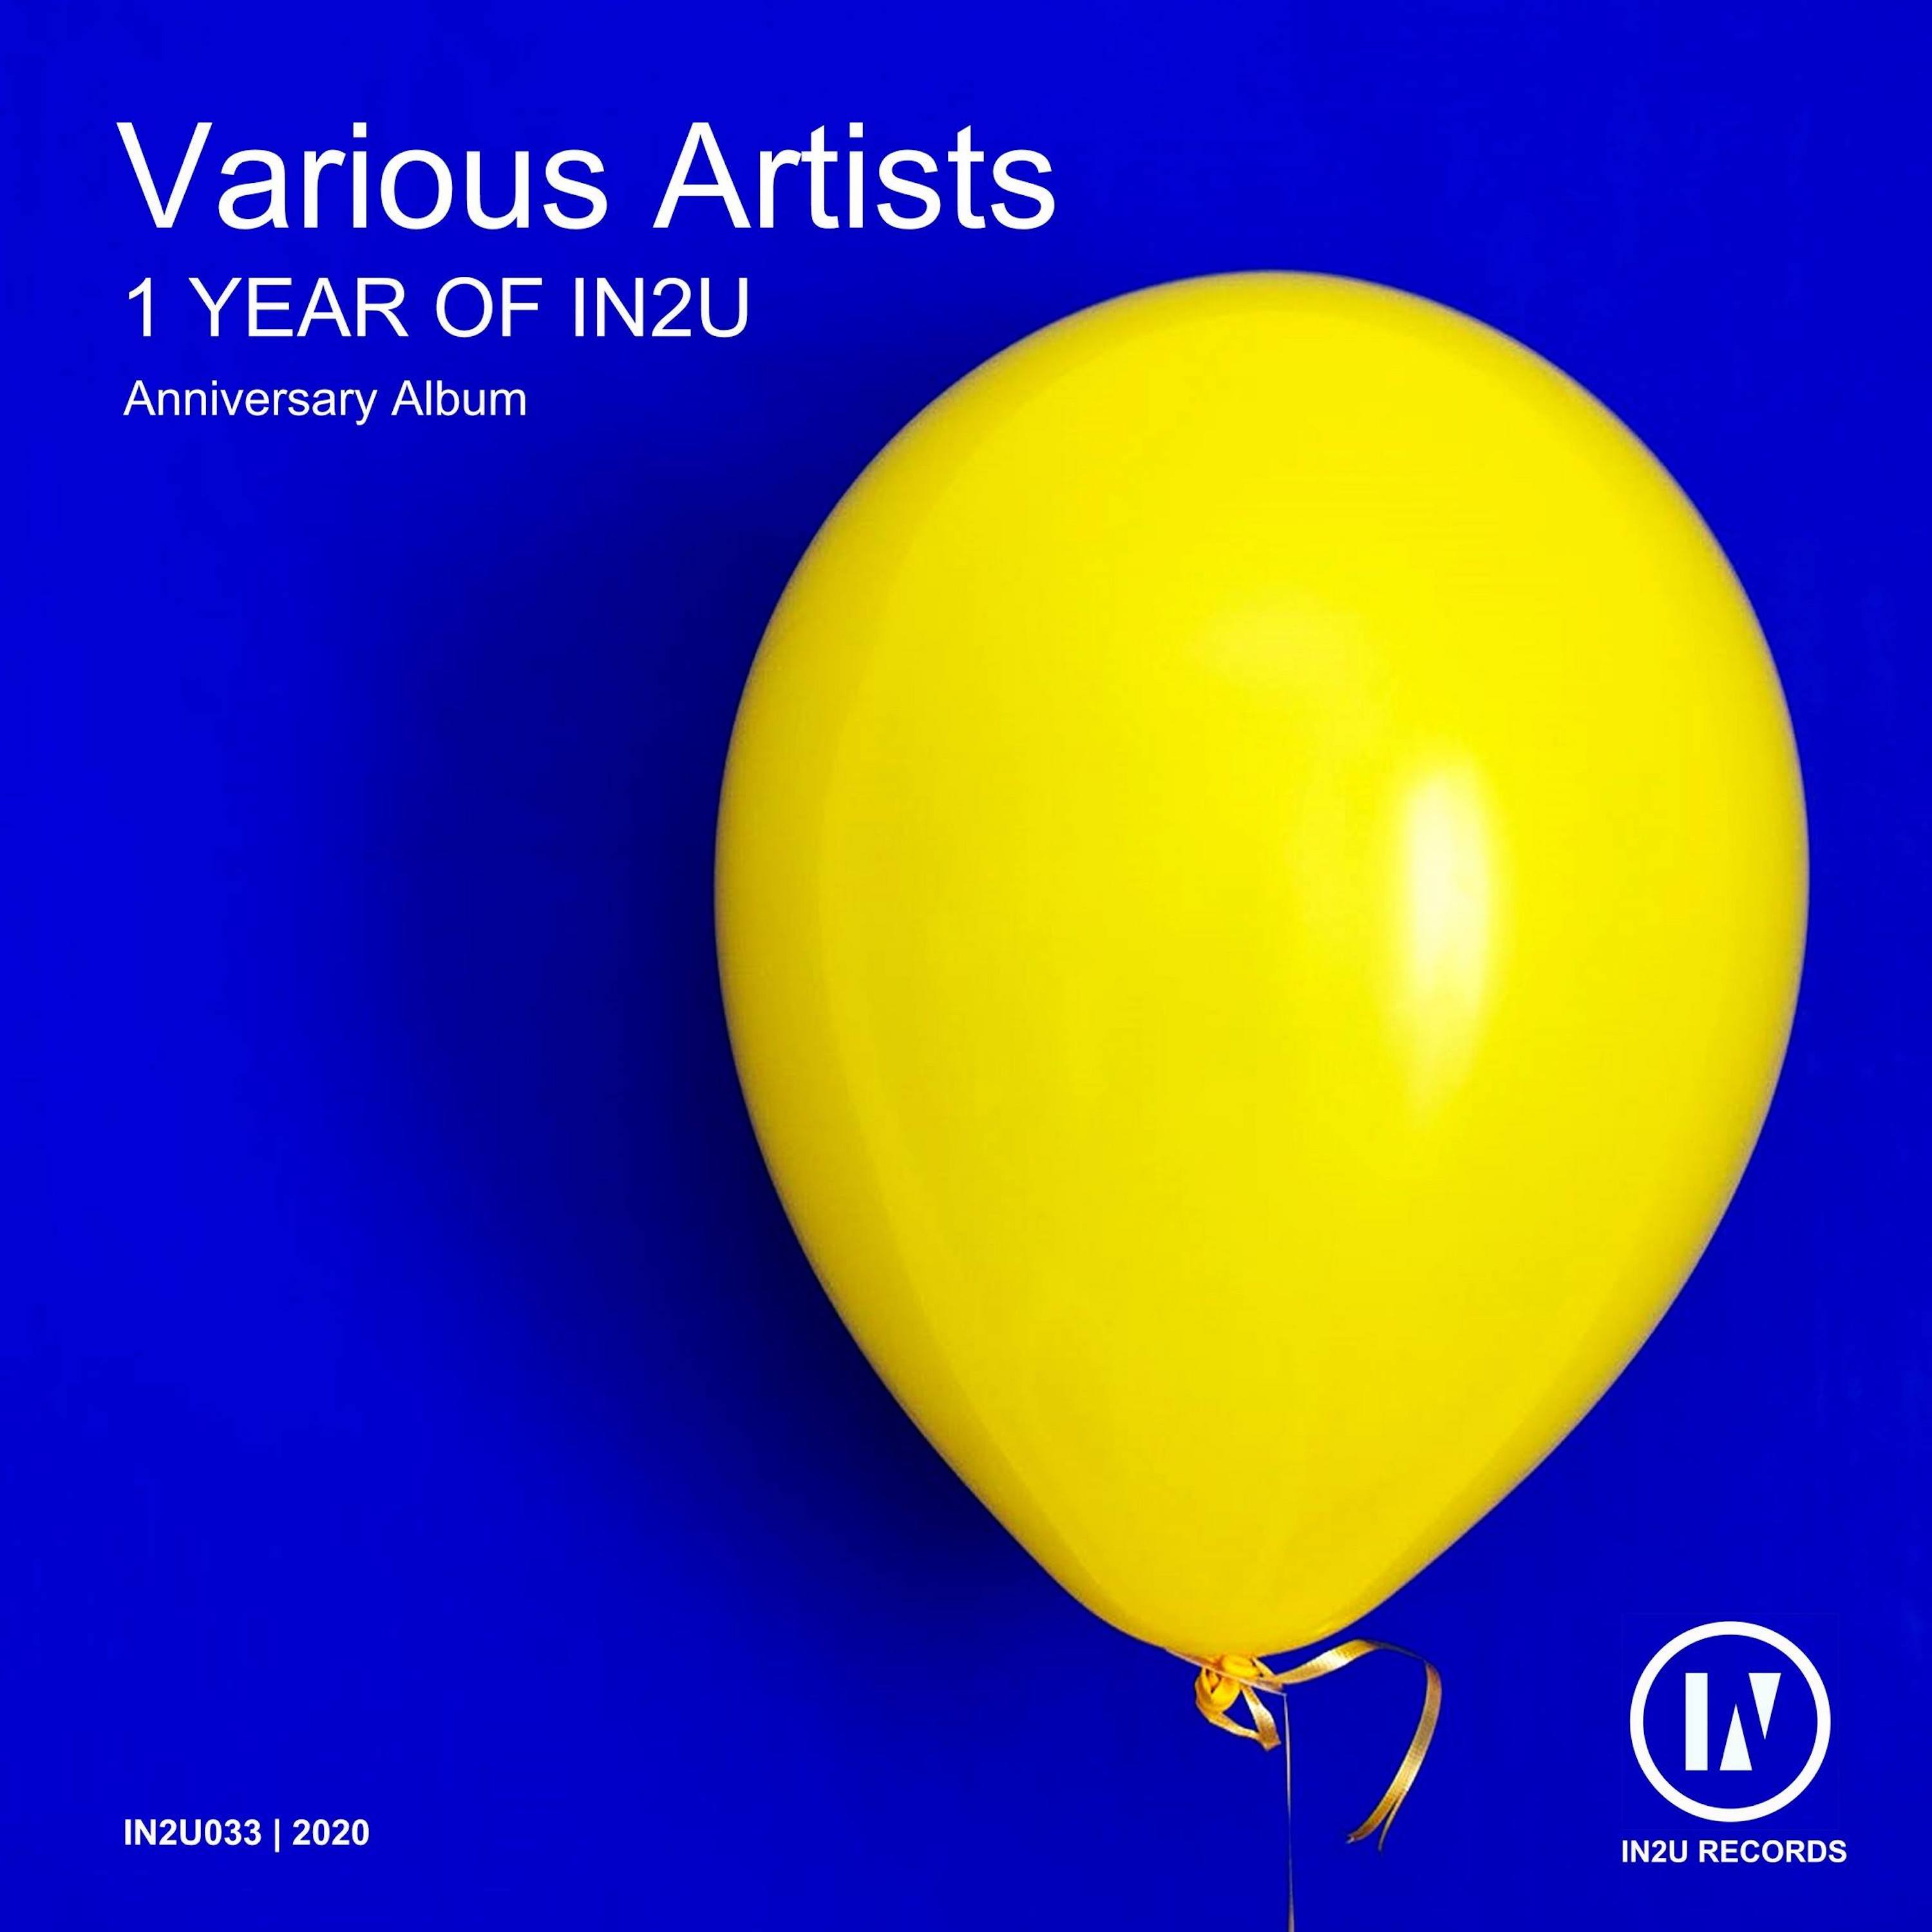 INU Residents Sessions :: IN2U | 053 | 1 Year of IN2U Album Launch Mix - Mixed by Nightbob (aired on April 19th, 2020) banner logo